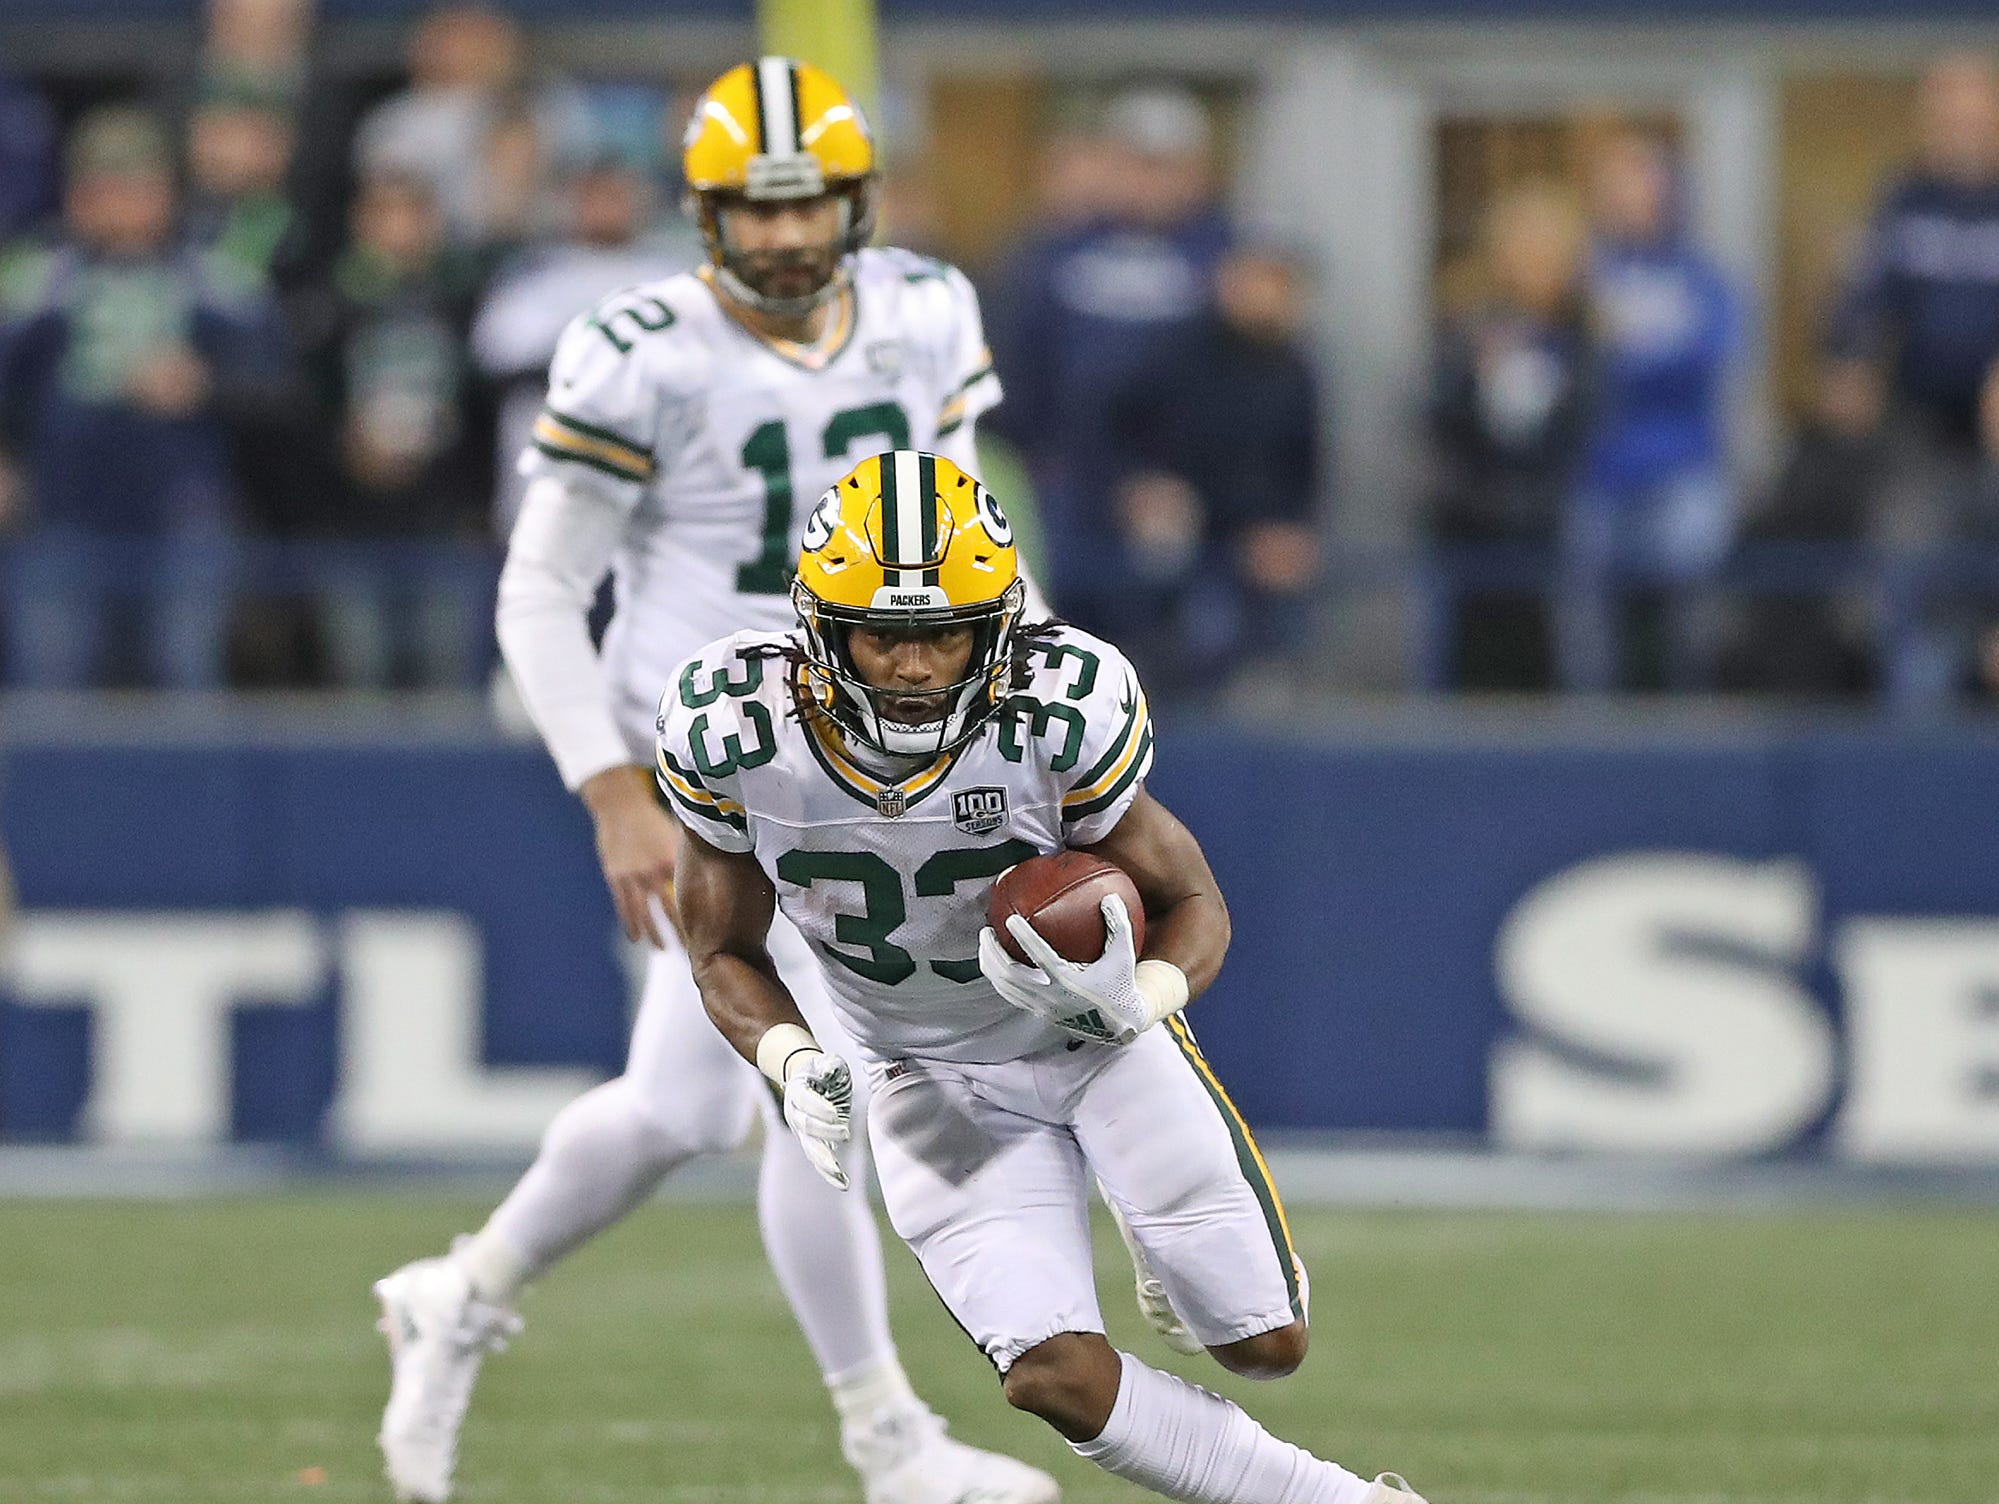 Green Bay Packers running back Aaron Jones (33) runs the ball against the Seattle Seahawks at CenturyLink Field Thursday, November 15, 2018 in Seattle, WA. Jim Matthews/USA TODAY NETWORK-Wis